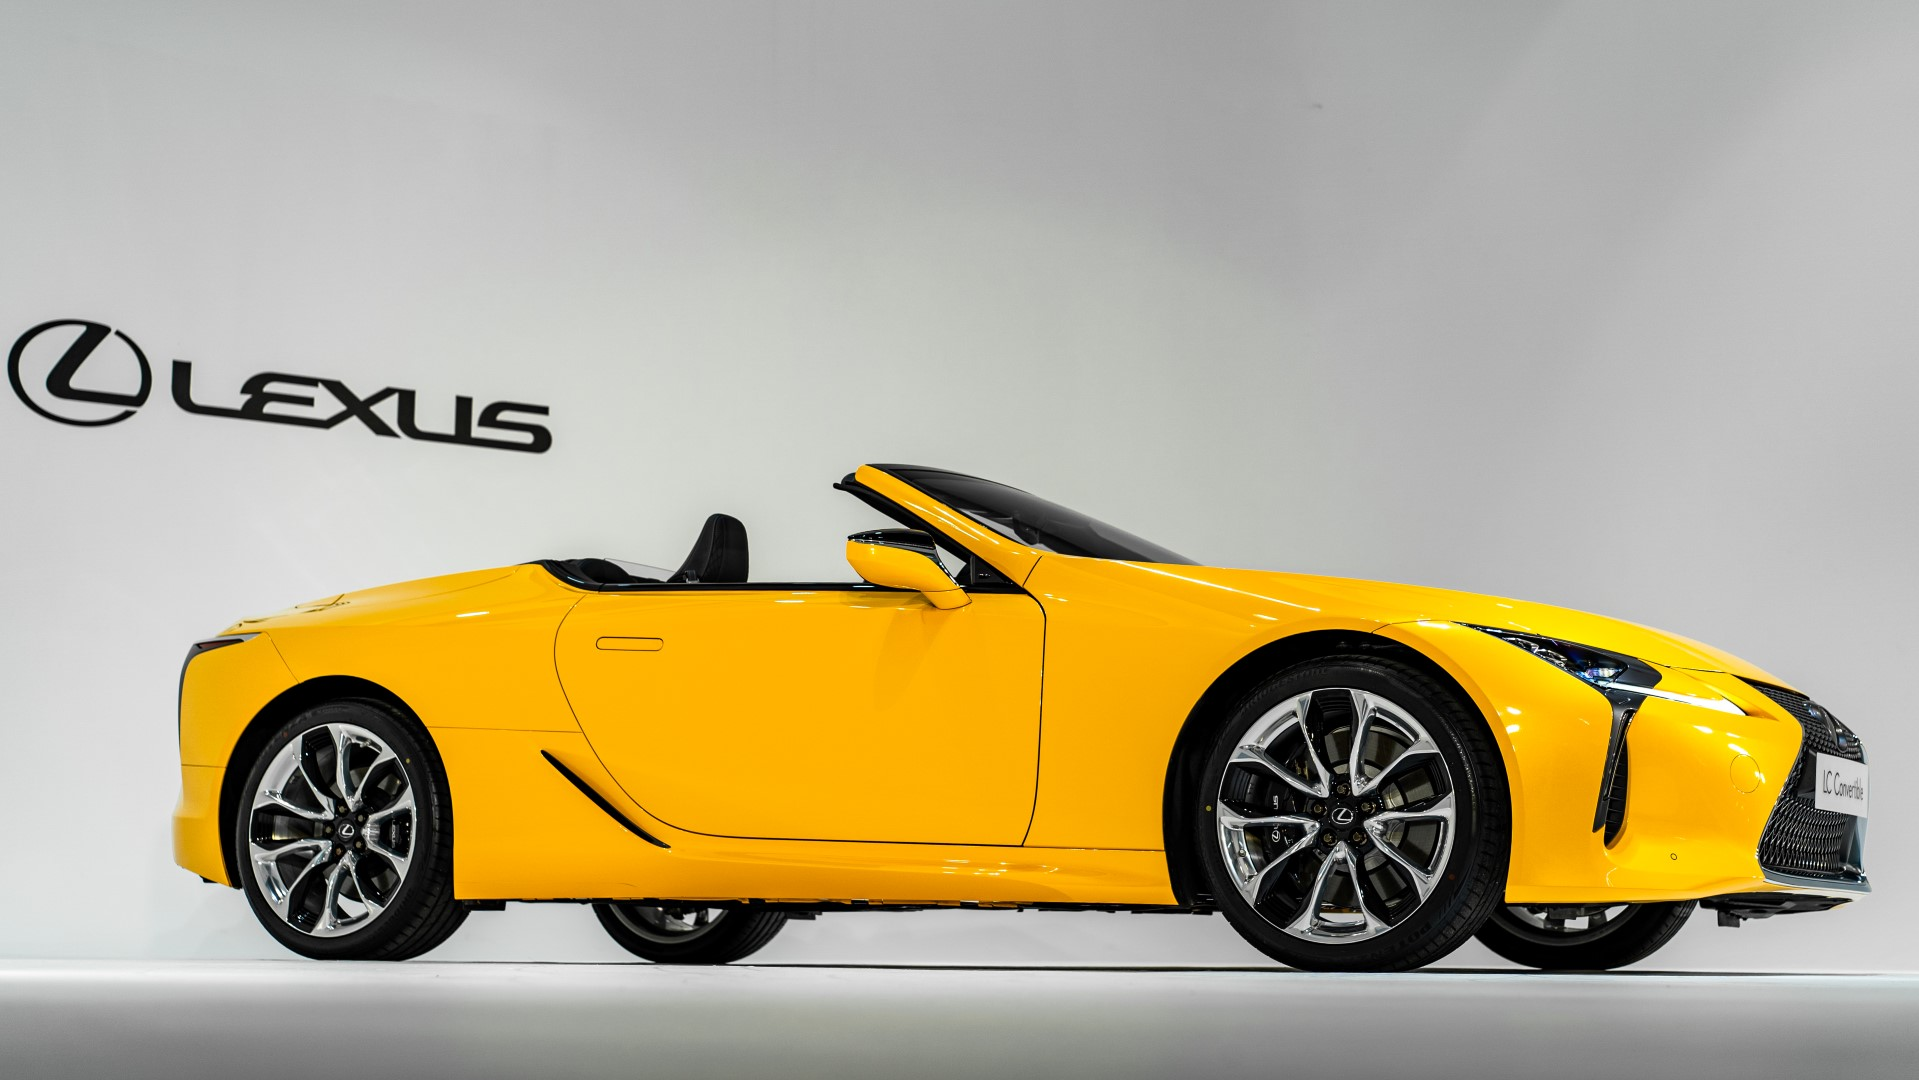 2020 Lexus LC 500 Convertible side profile